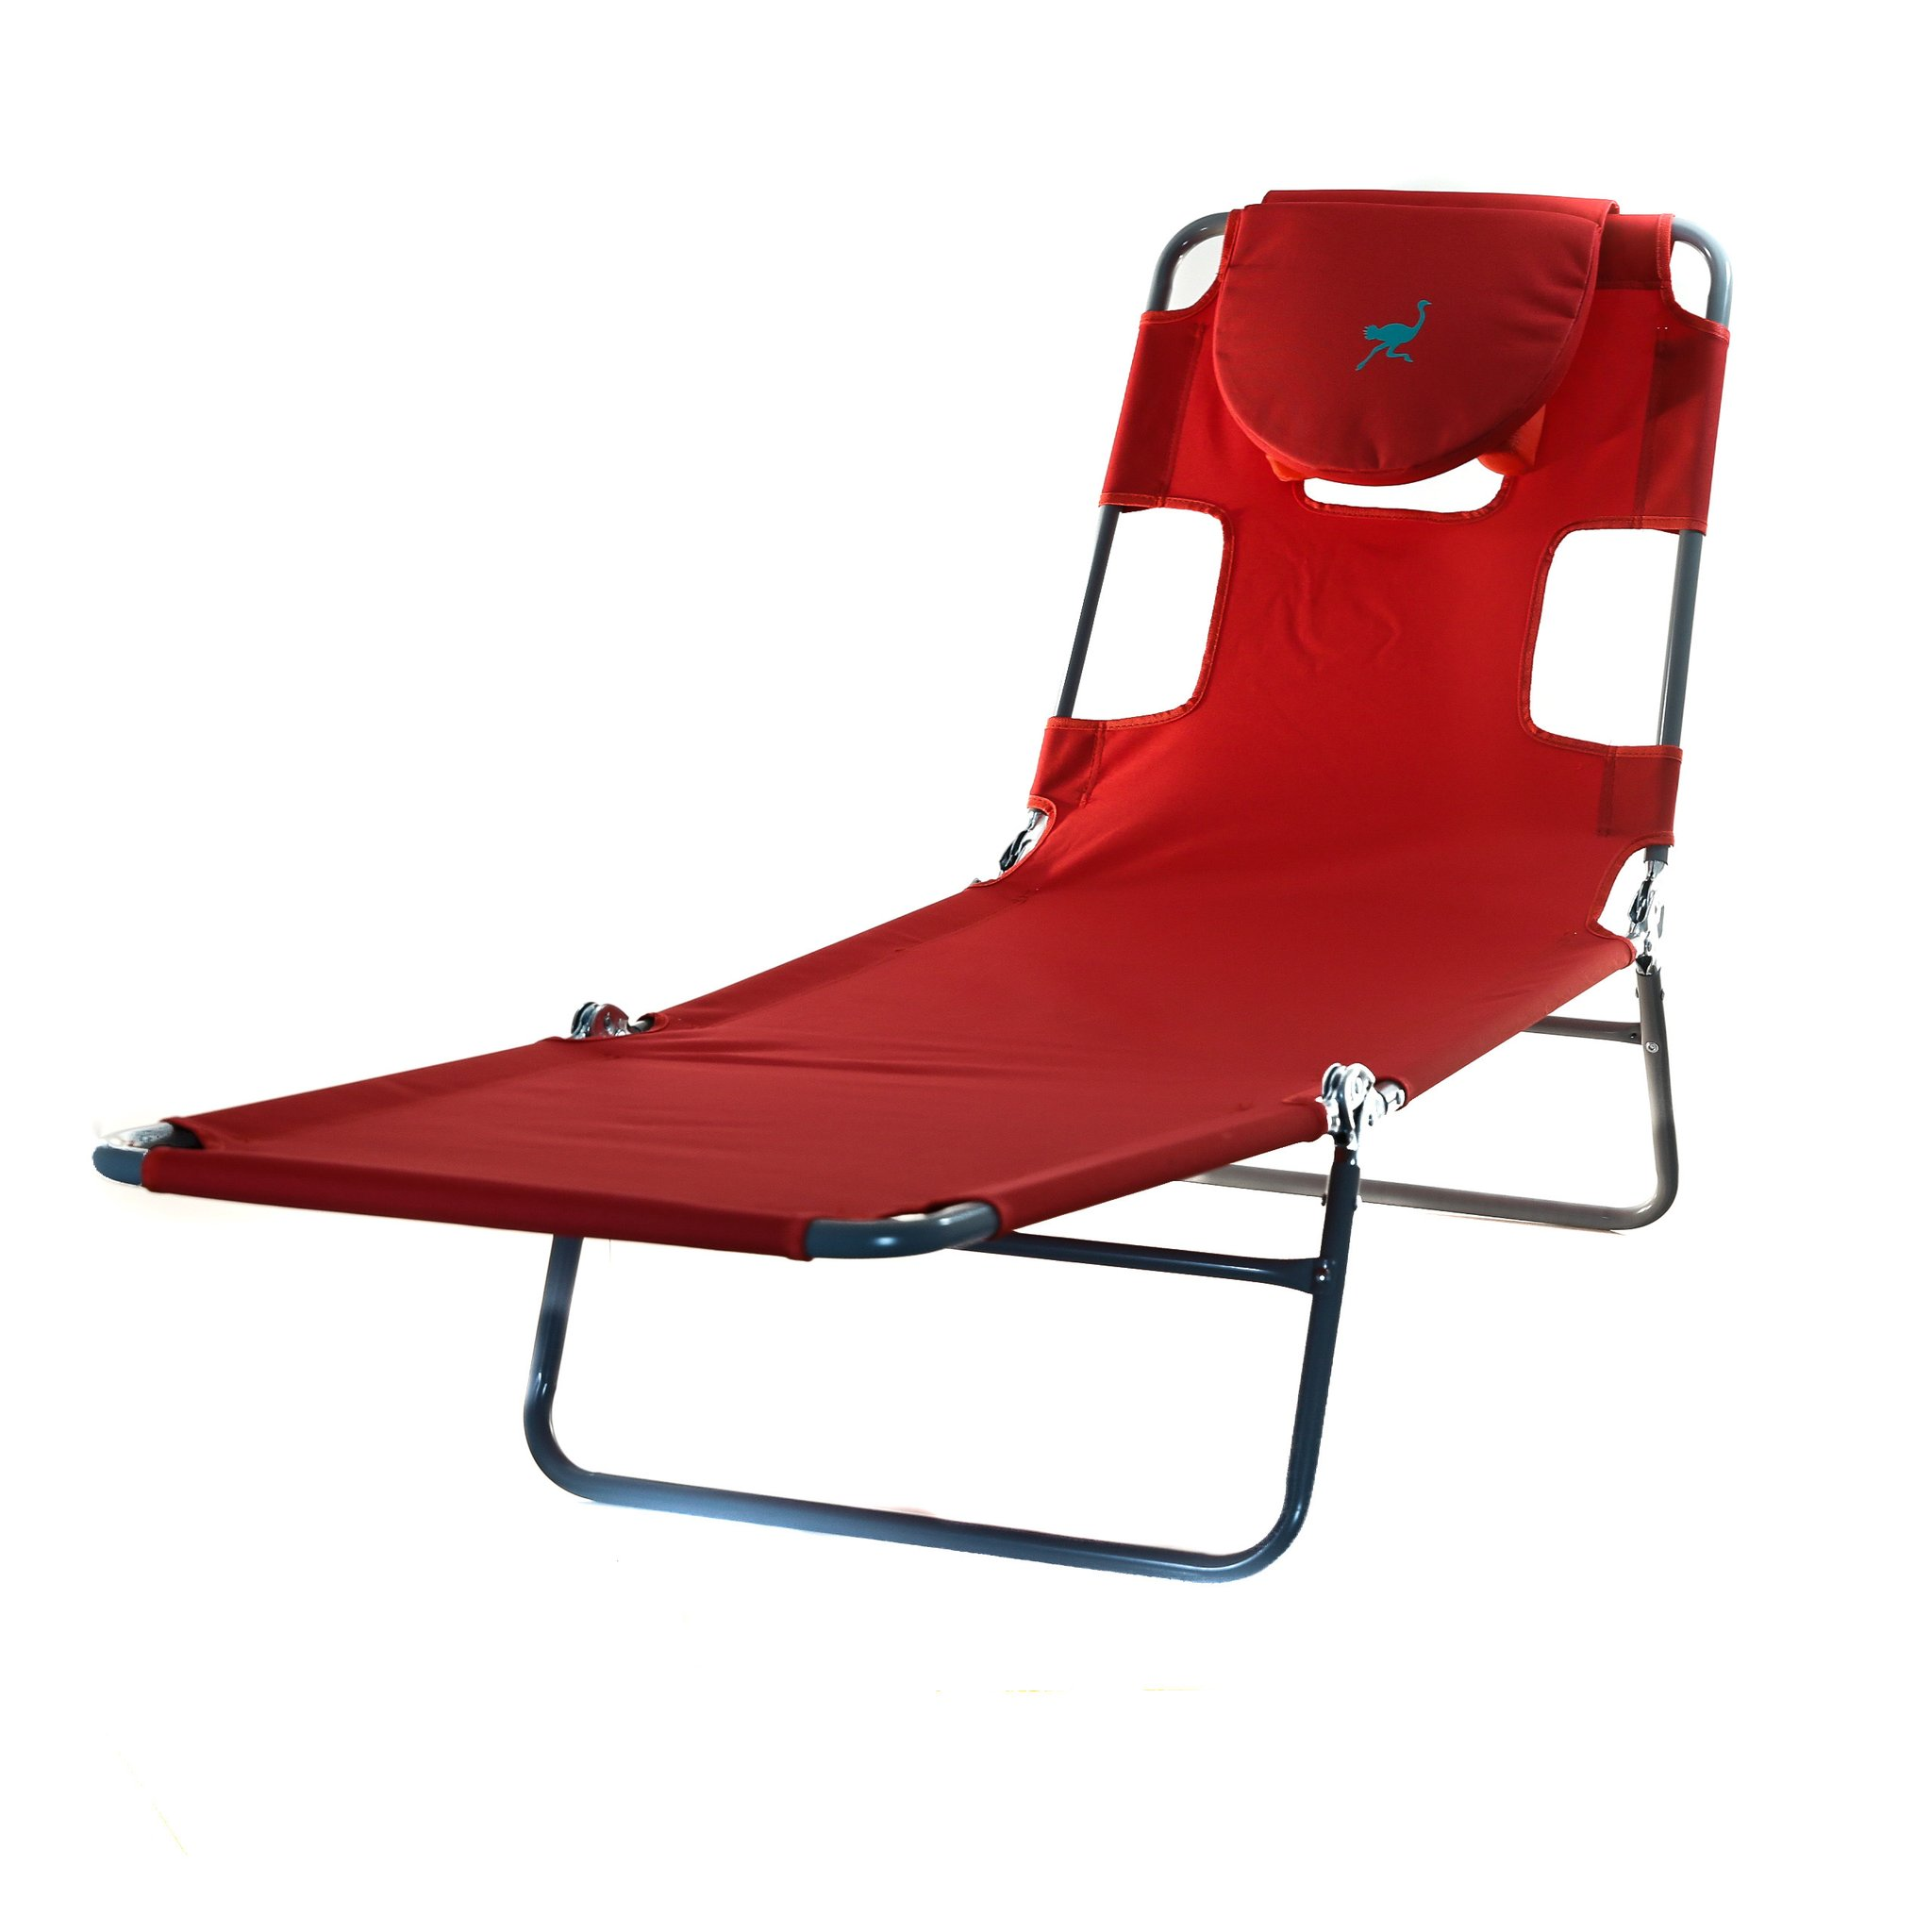 Ostrich Spring Lake Lounger Face Down Sunbathing Chaise